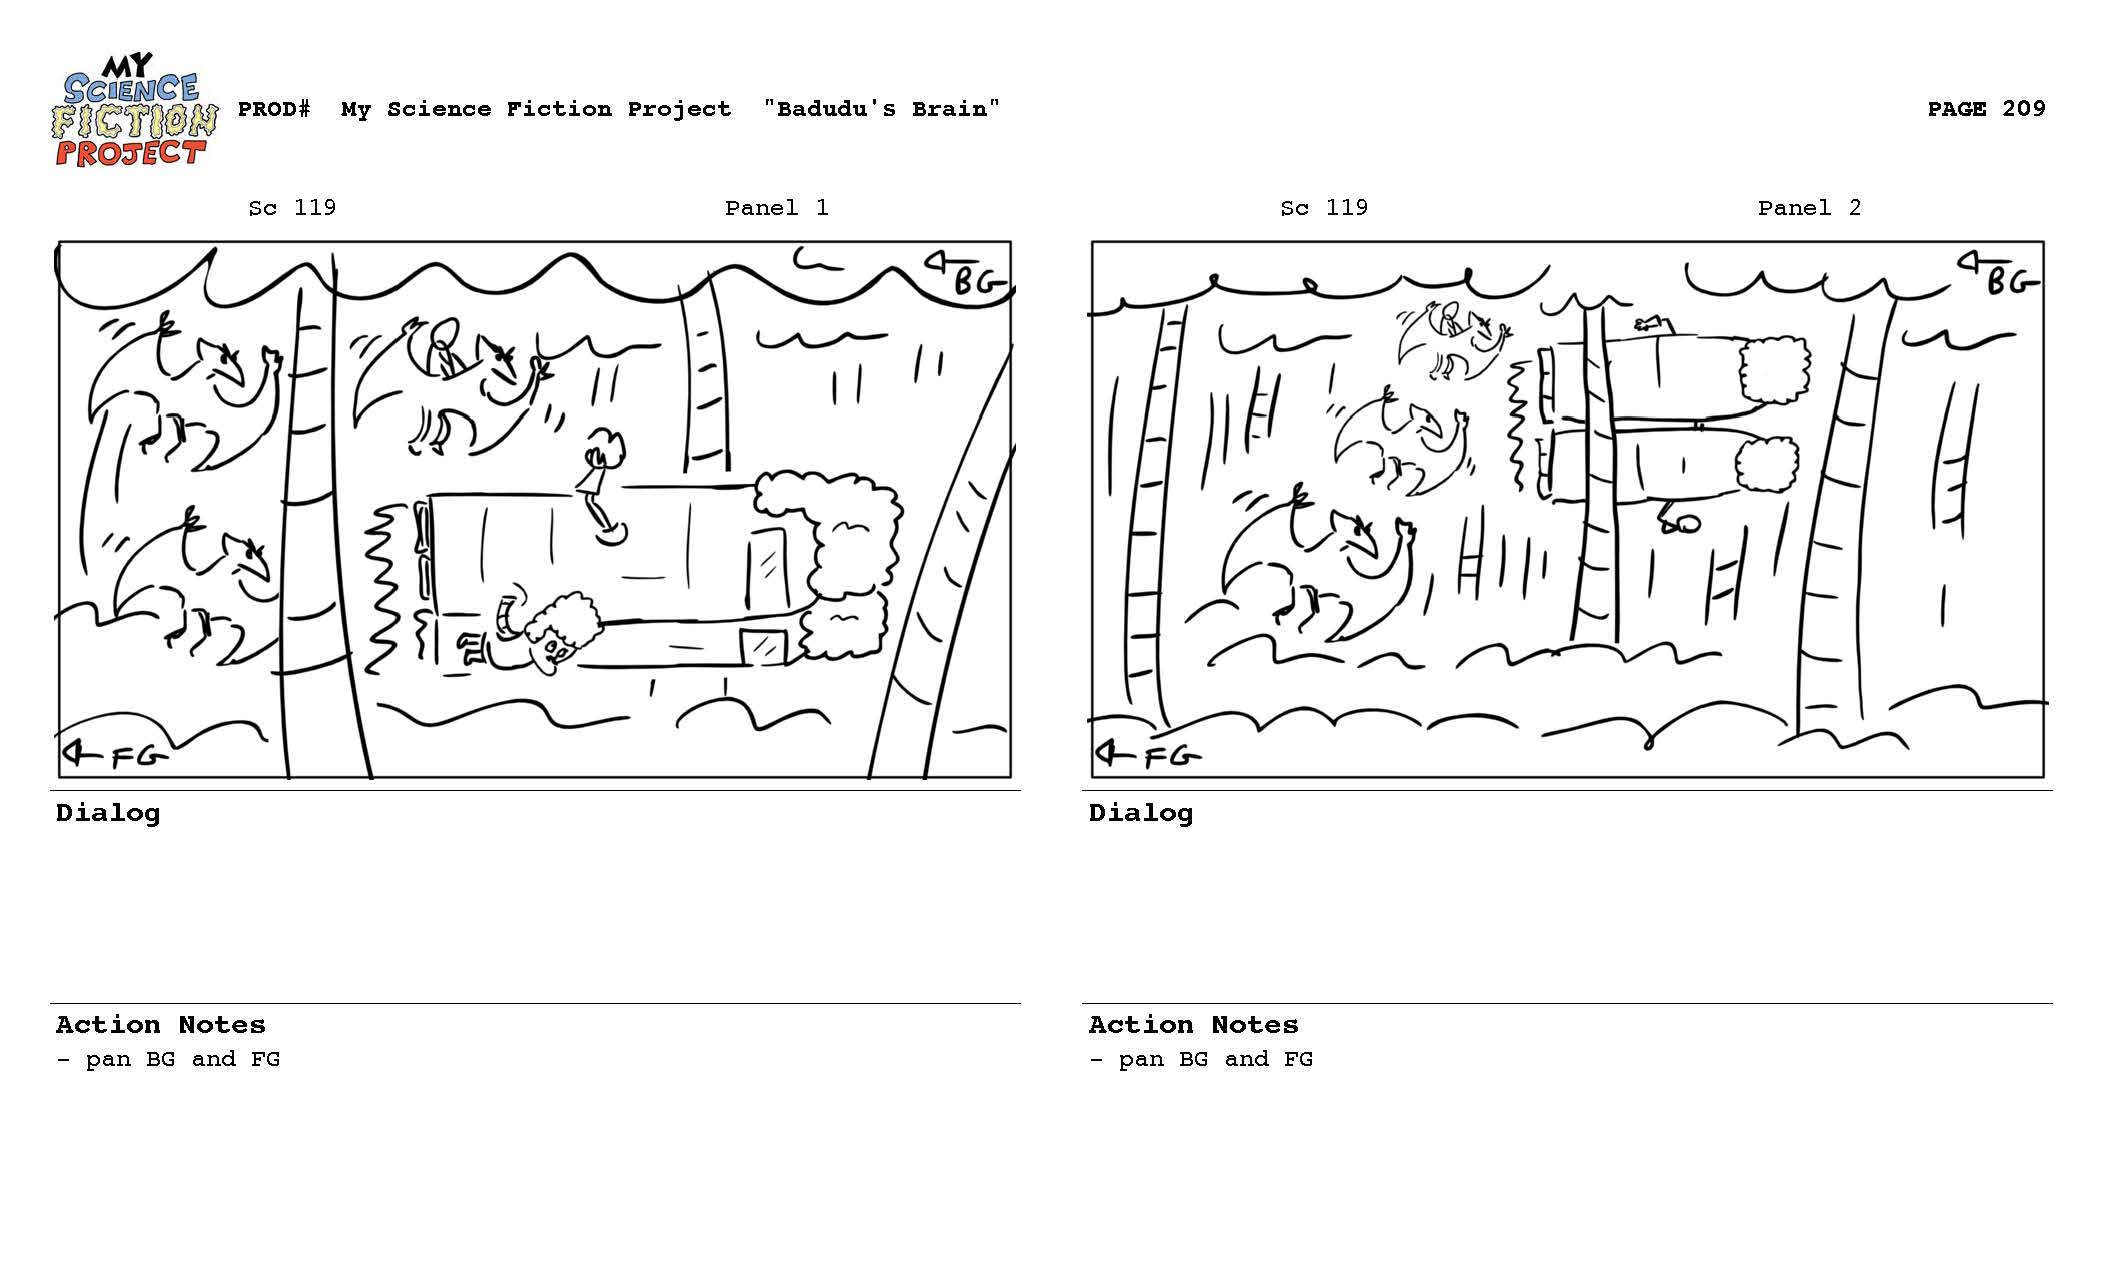 My_Science_Fiction_Project_SB_083112_reduced_Page_209.jpg